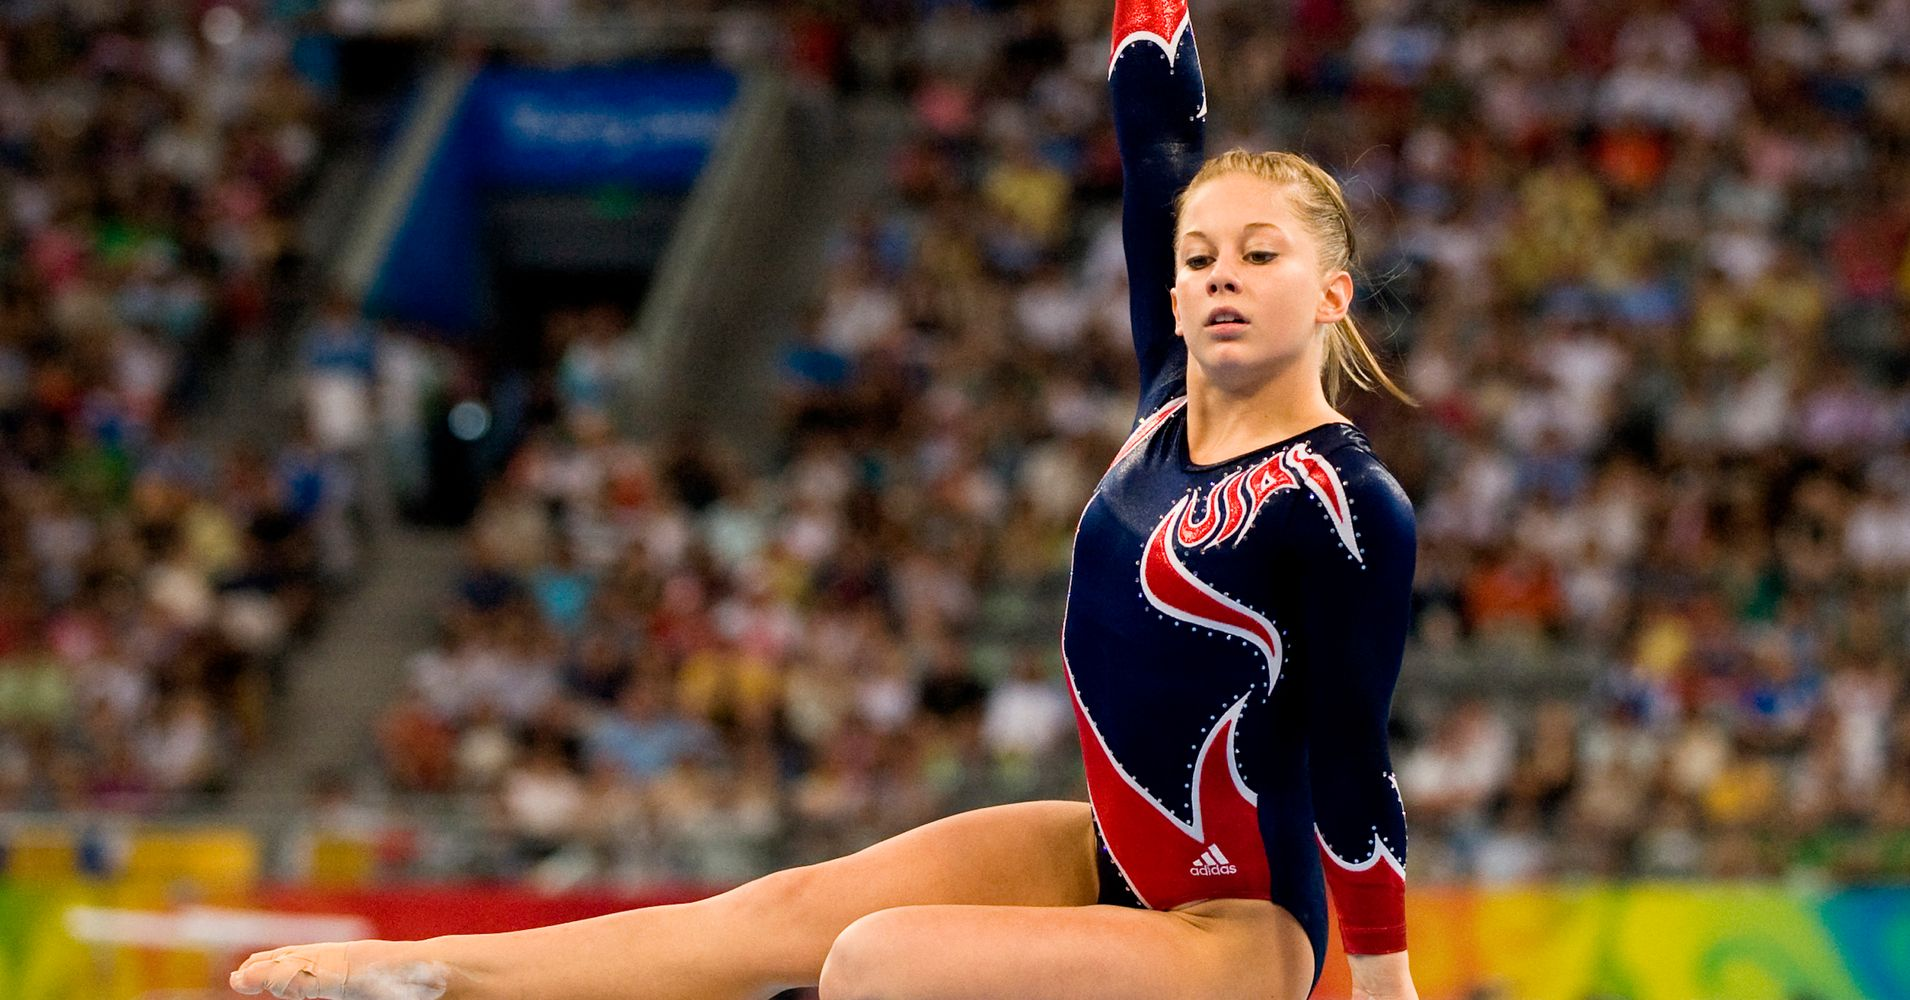 Shawn Johnson Thinks The Media Needs To Shut Up About